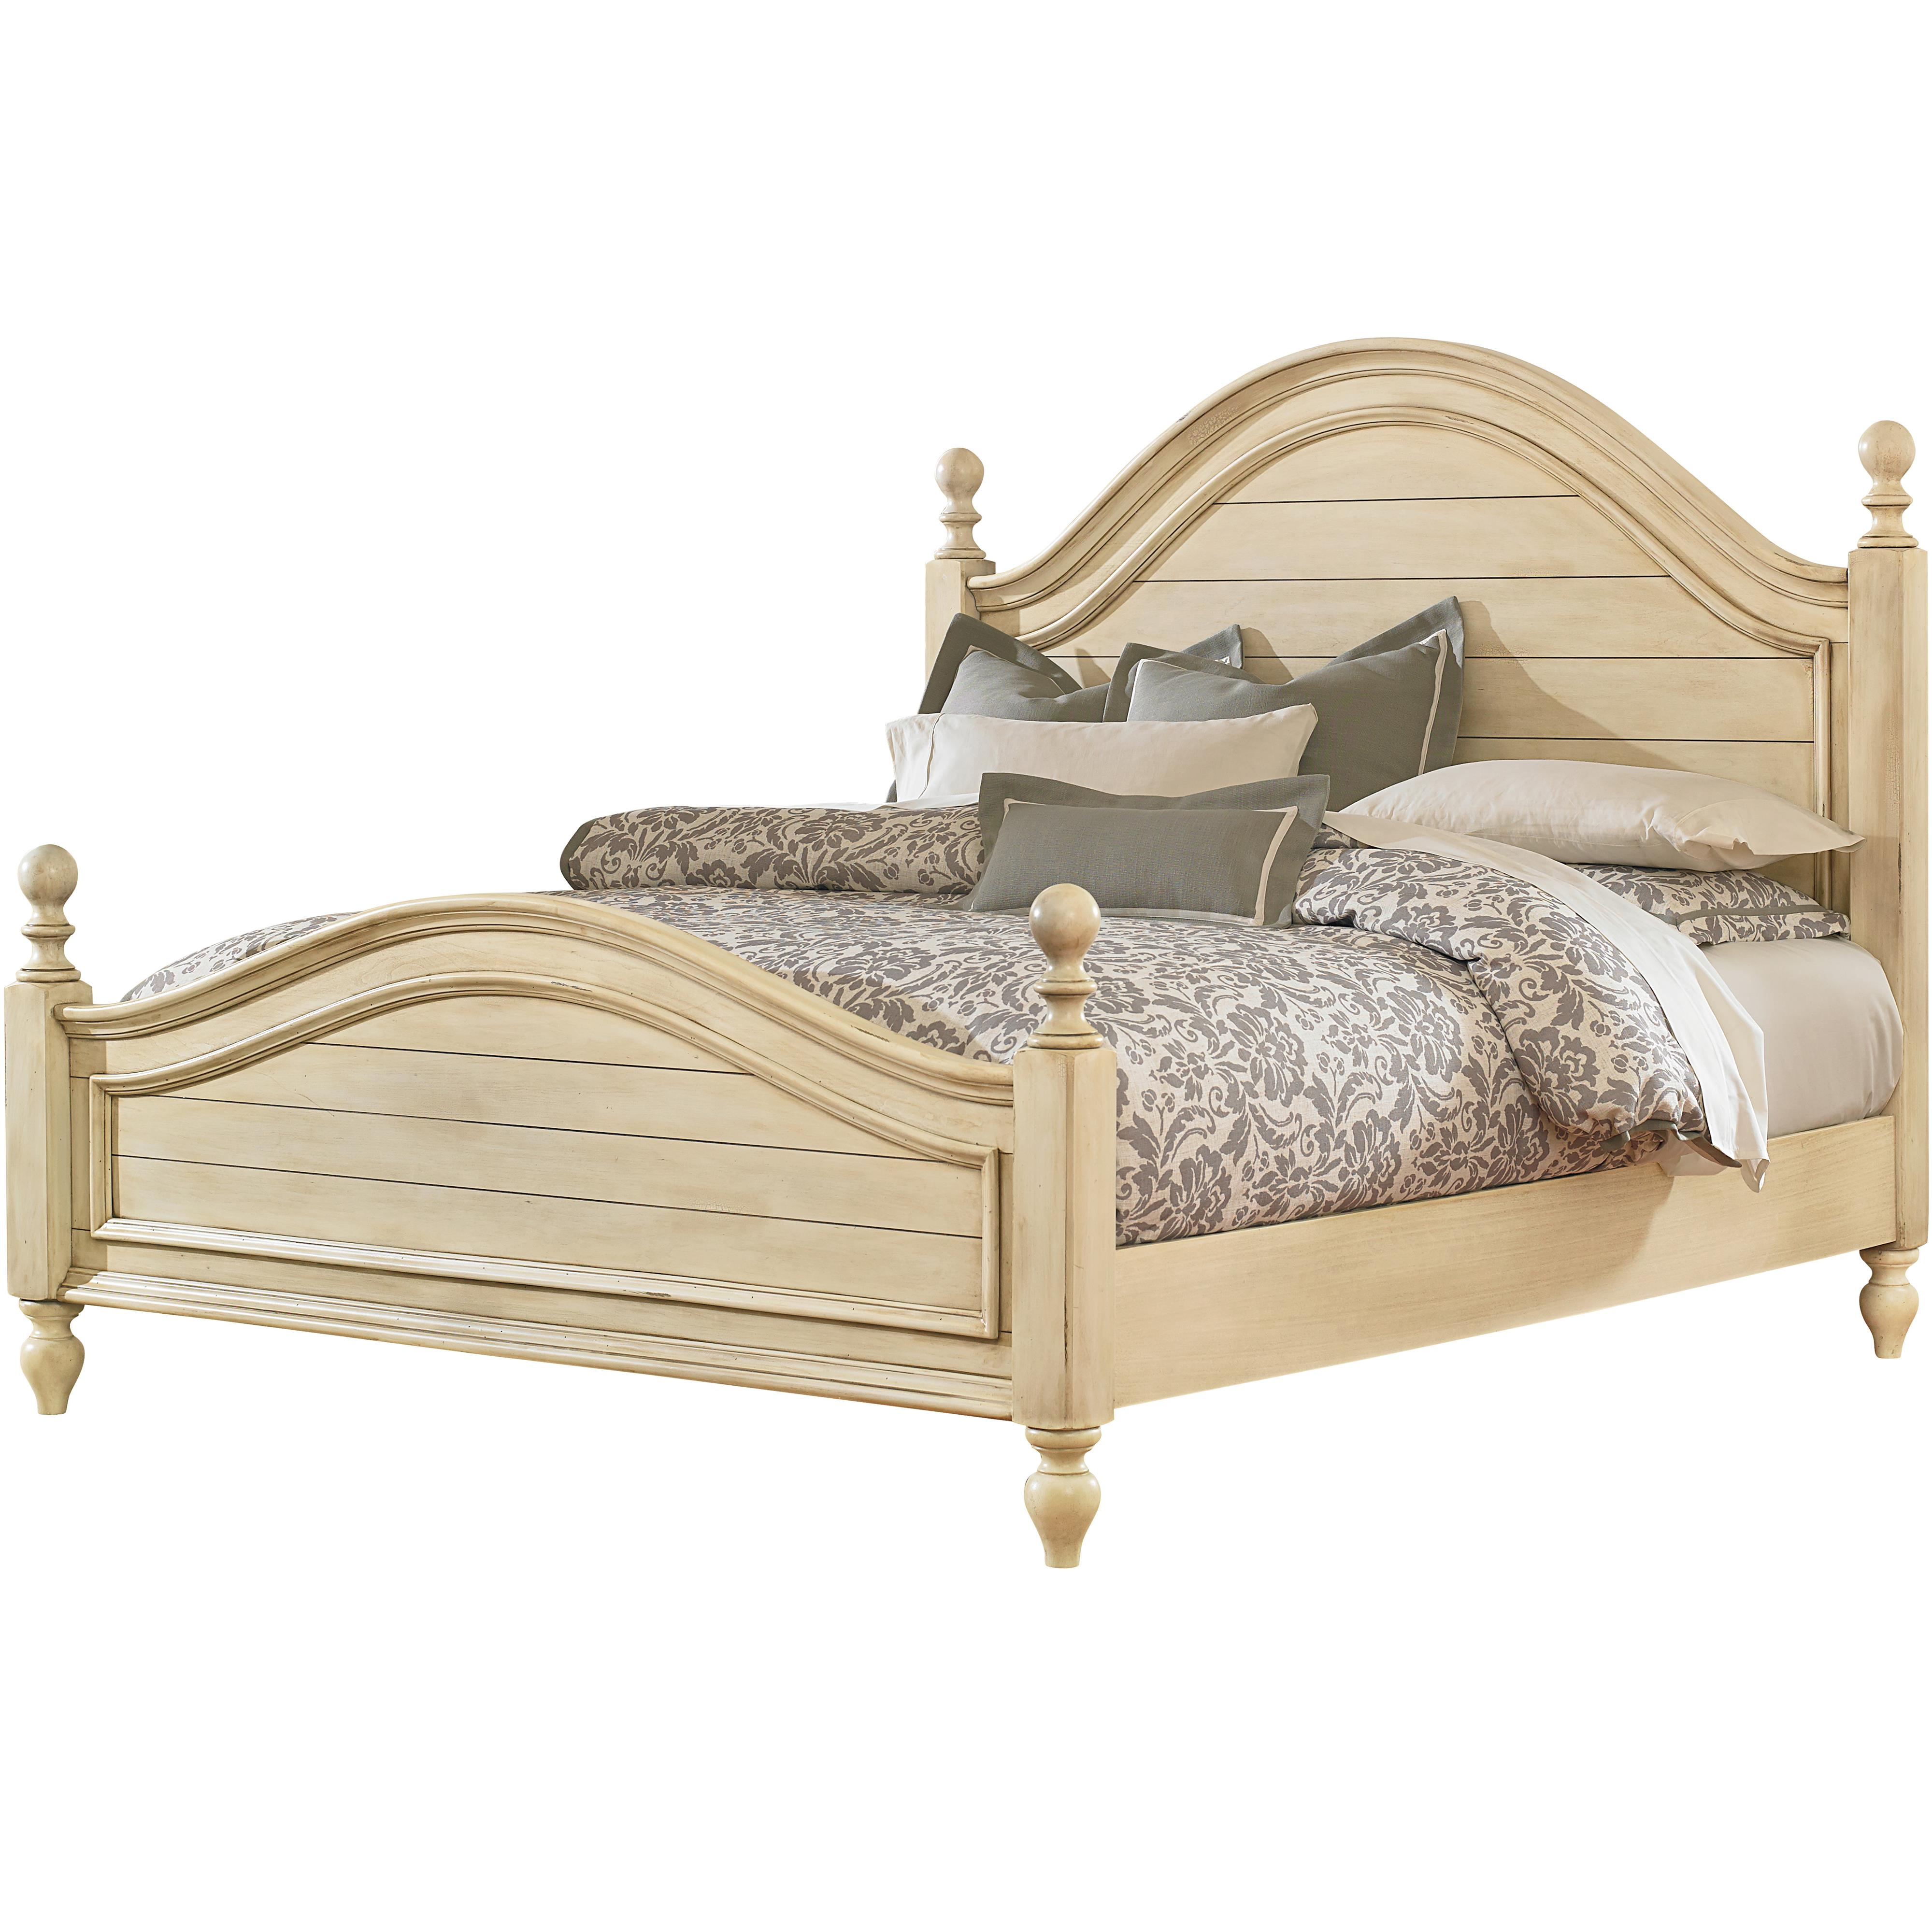 Chateau king bed with arched headboard and footboard by for King footboard